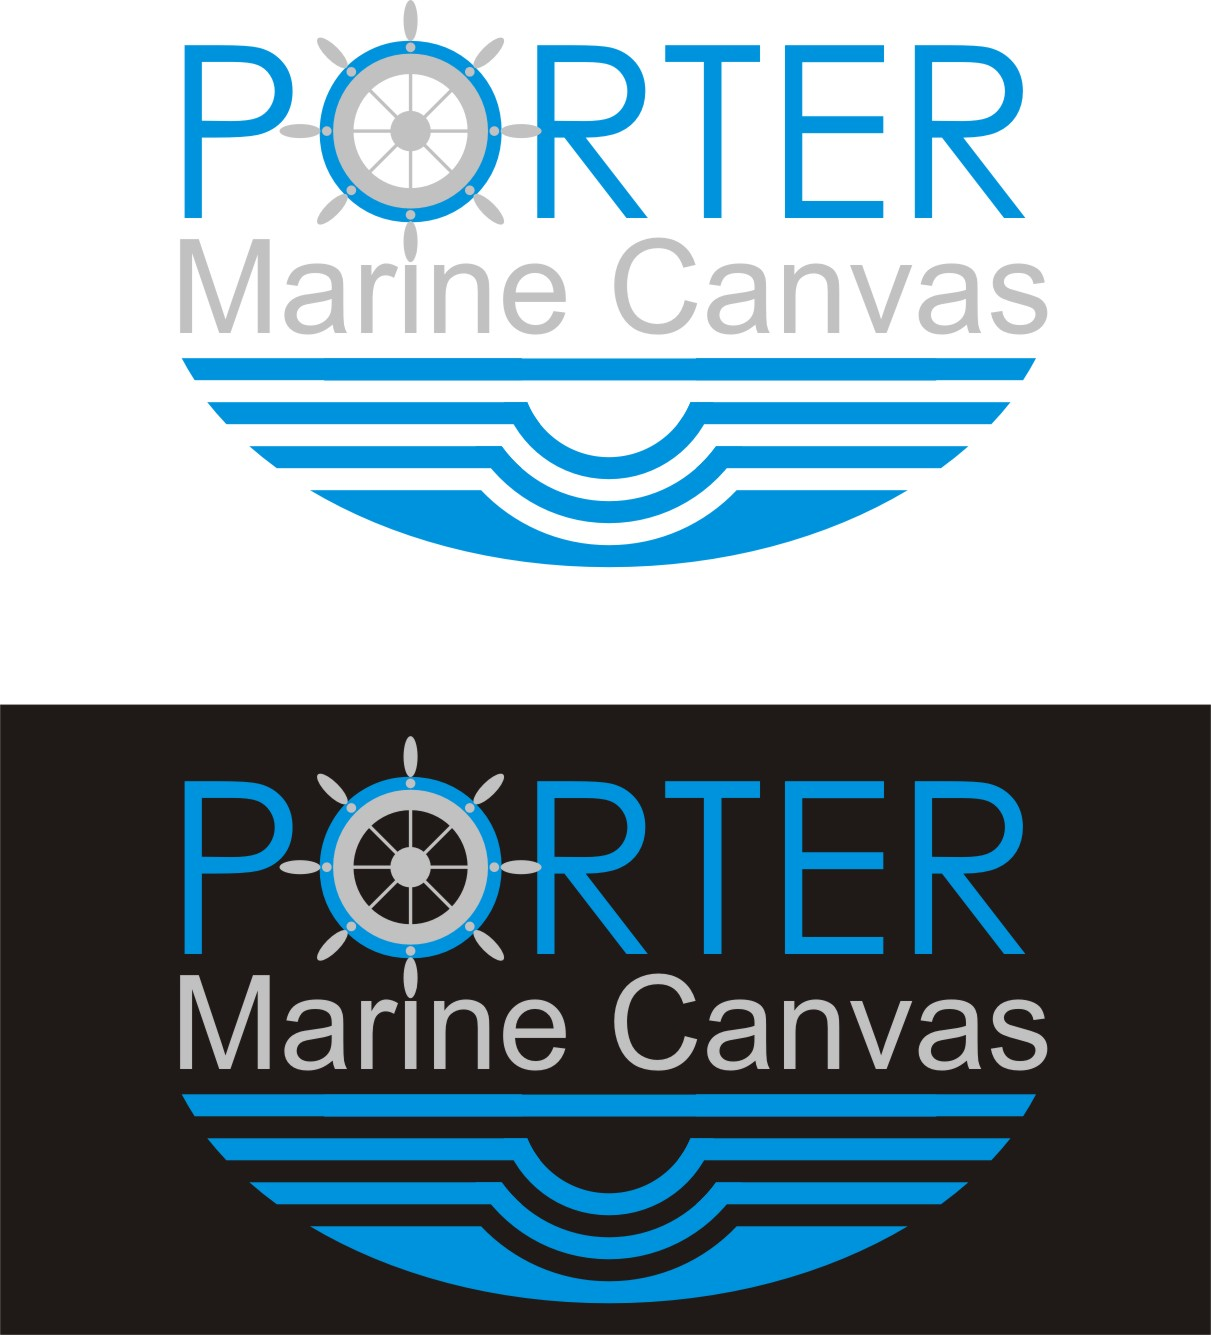 Logo Design by Korsunov Oleg - Entry No. 86 in the Logo Design Contest Imaginative Logo Design for Porter Marine Canvas.